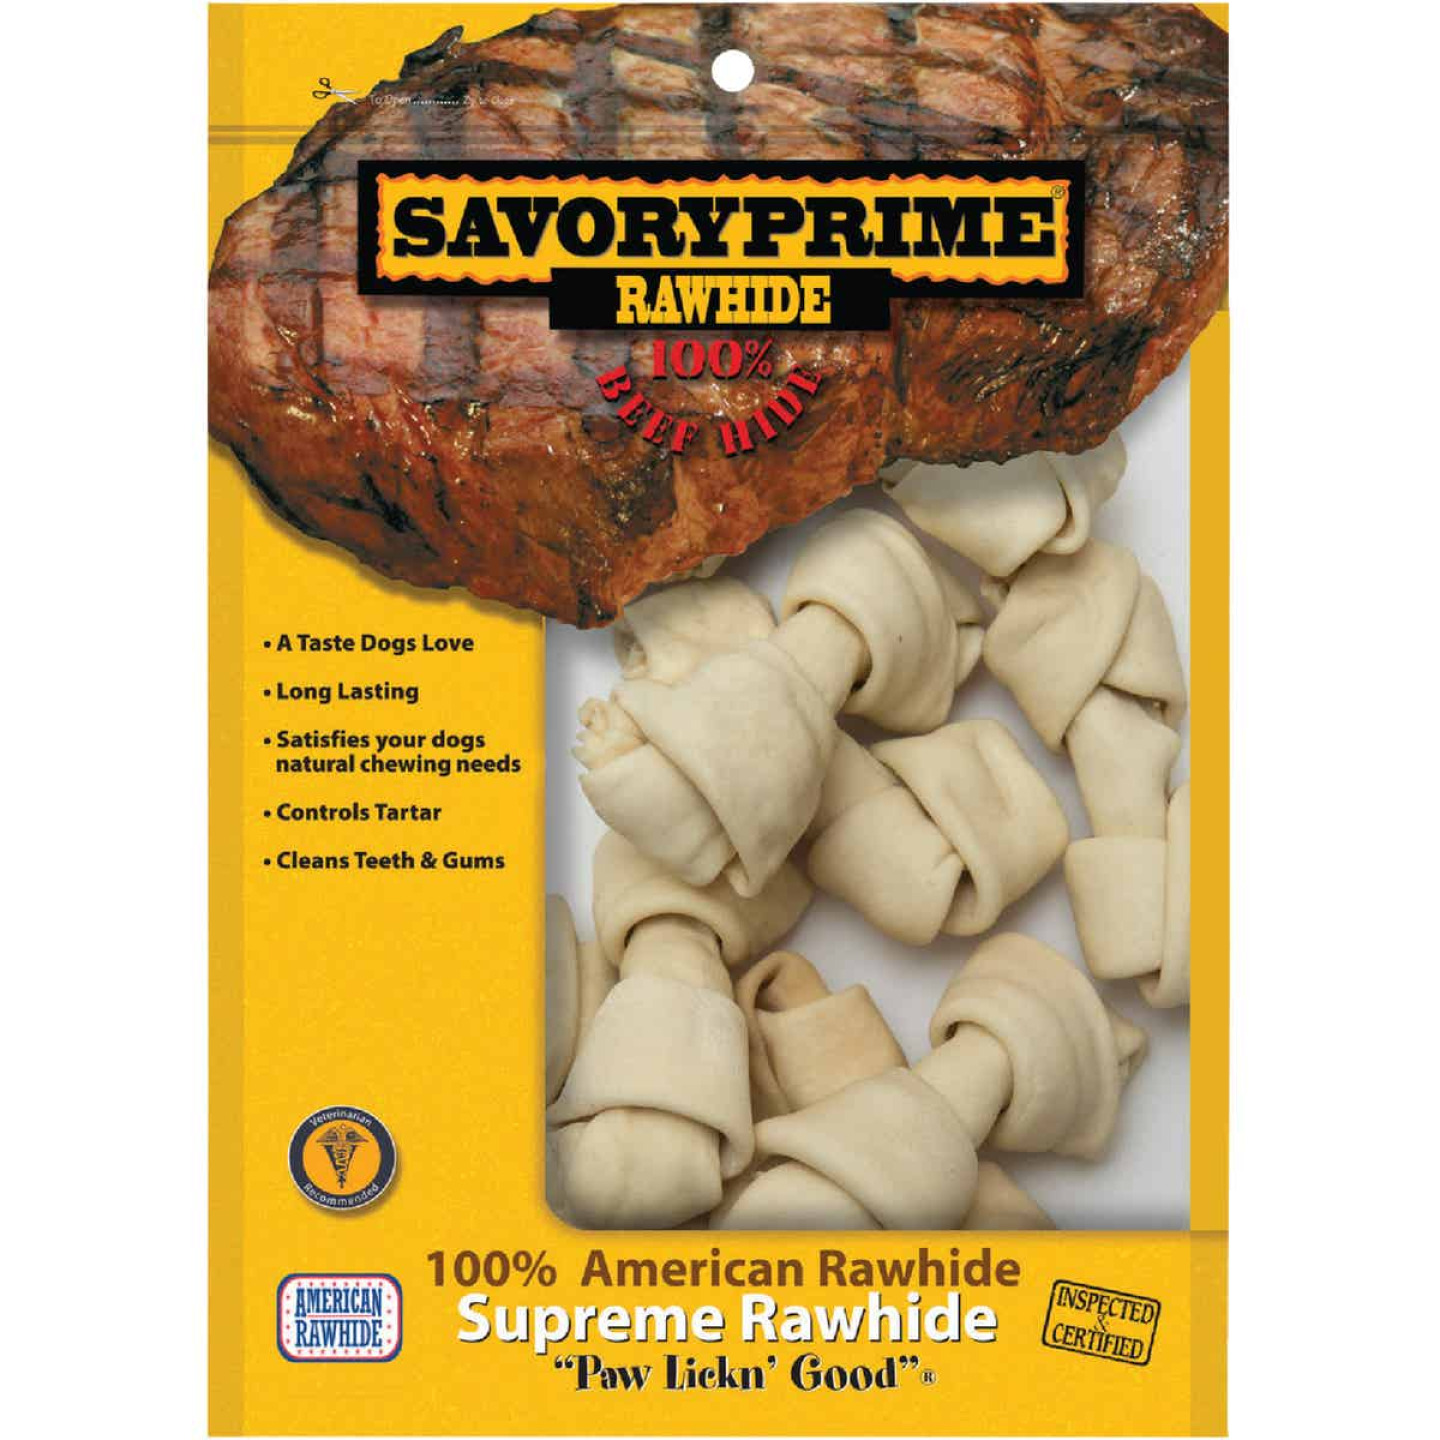 Savory Prime Knotted 4 In. to 5 In. Rawhide Bone (10-Pack) Image 1